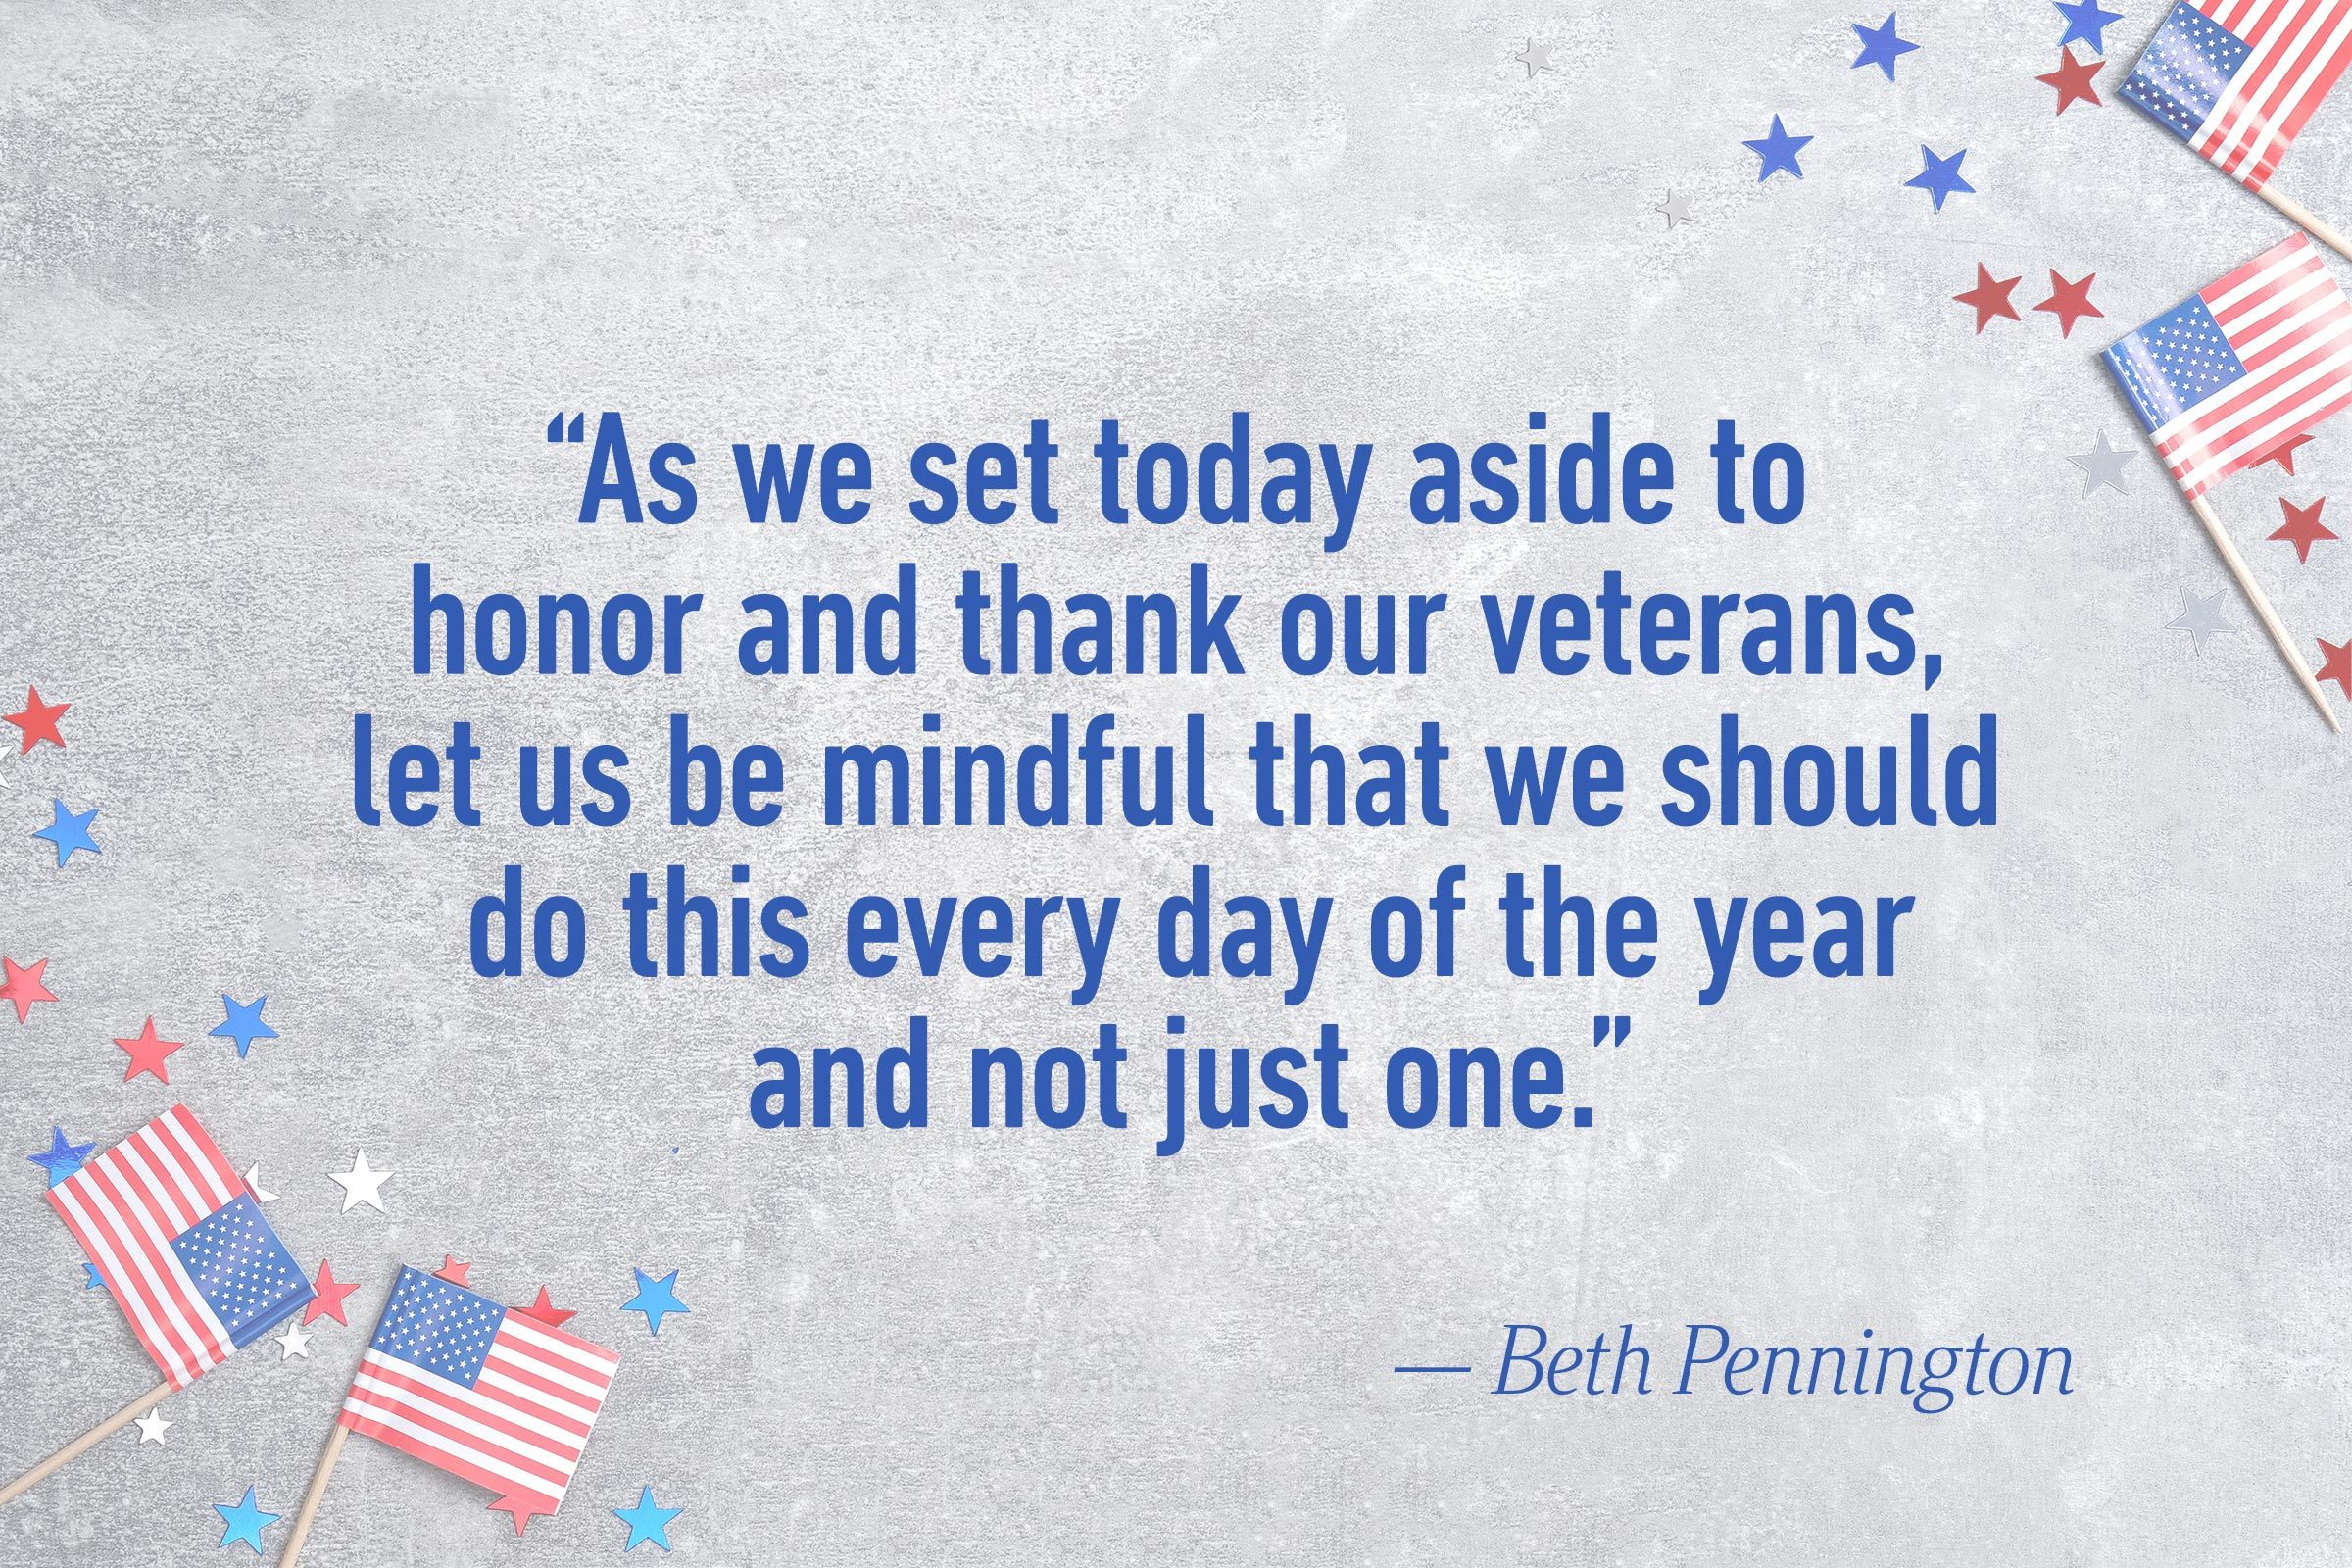 """As we set today aside to honor and thank our veterans, let us be mindful that we should do this every day of the year and not just one.""—Beth Pennington"